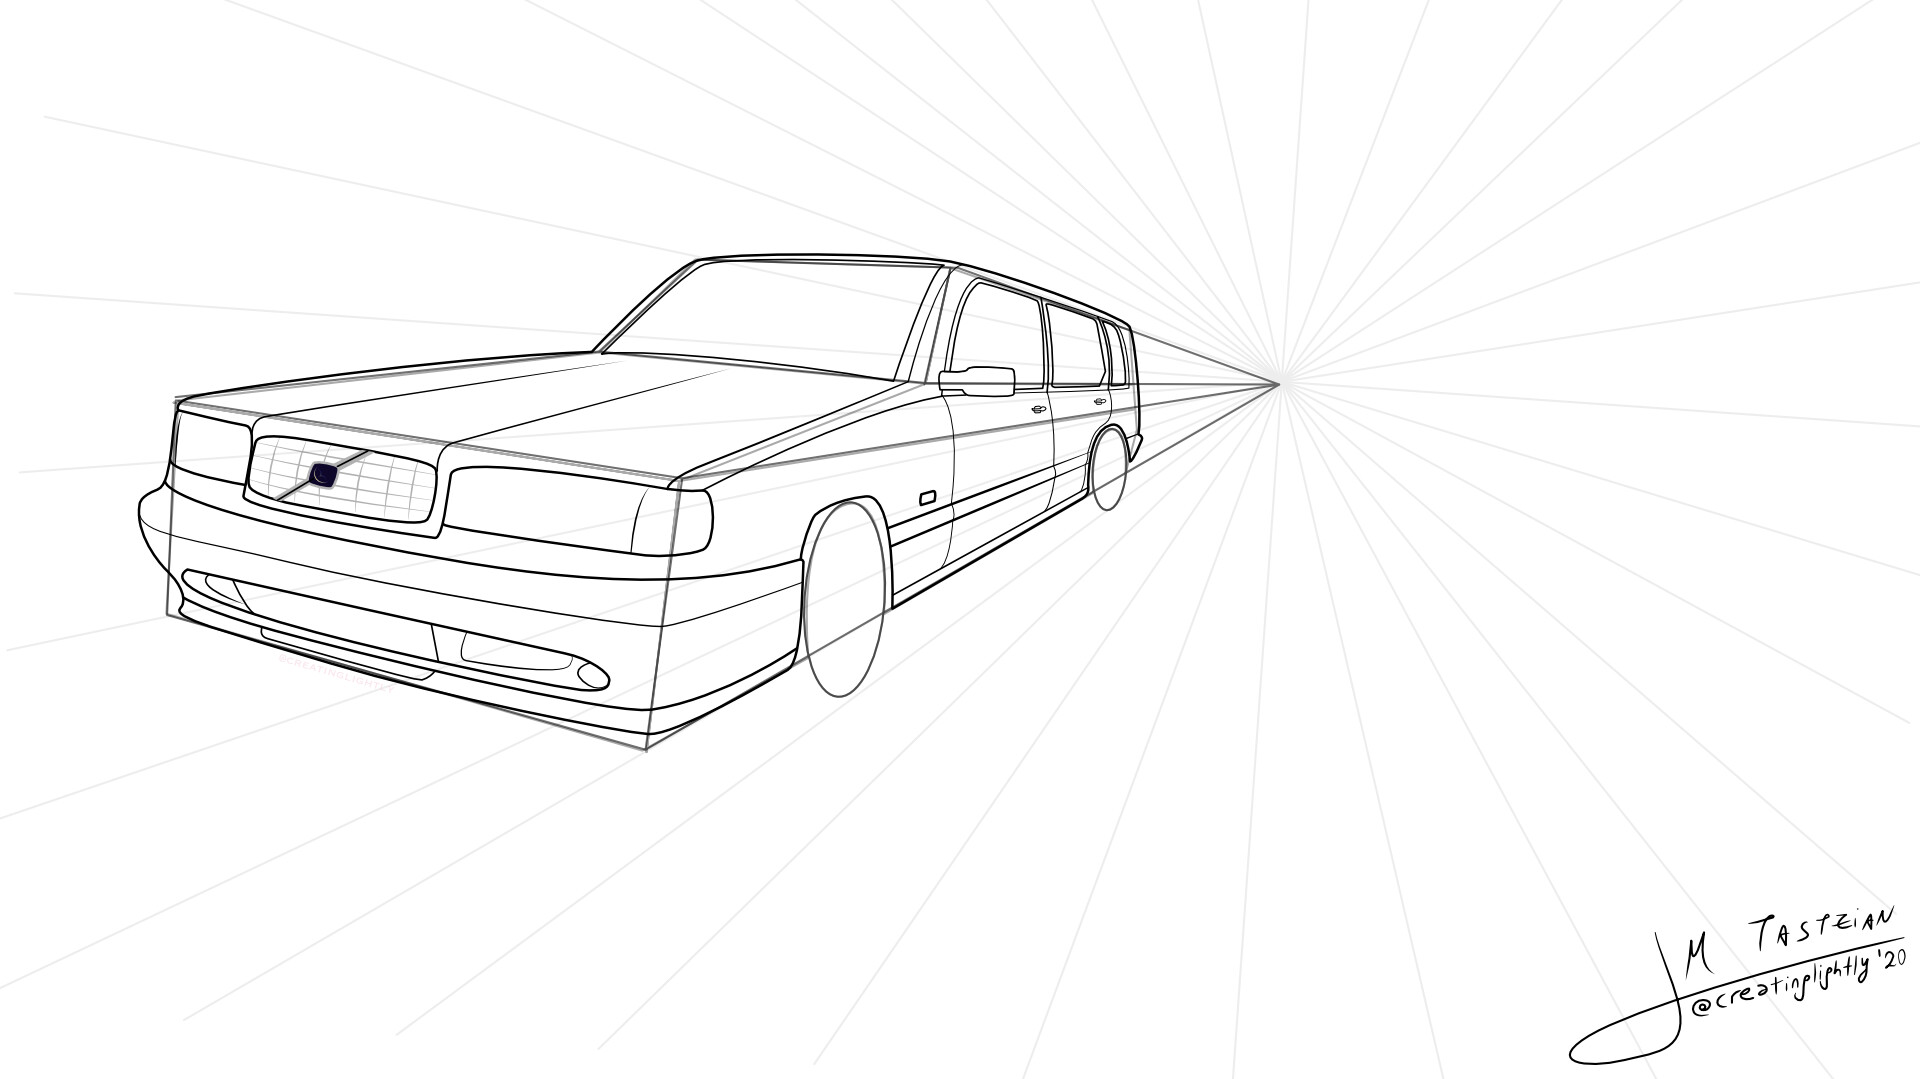 Sketch with perspective grid lines